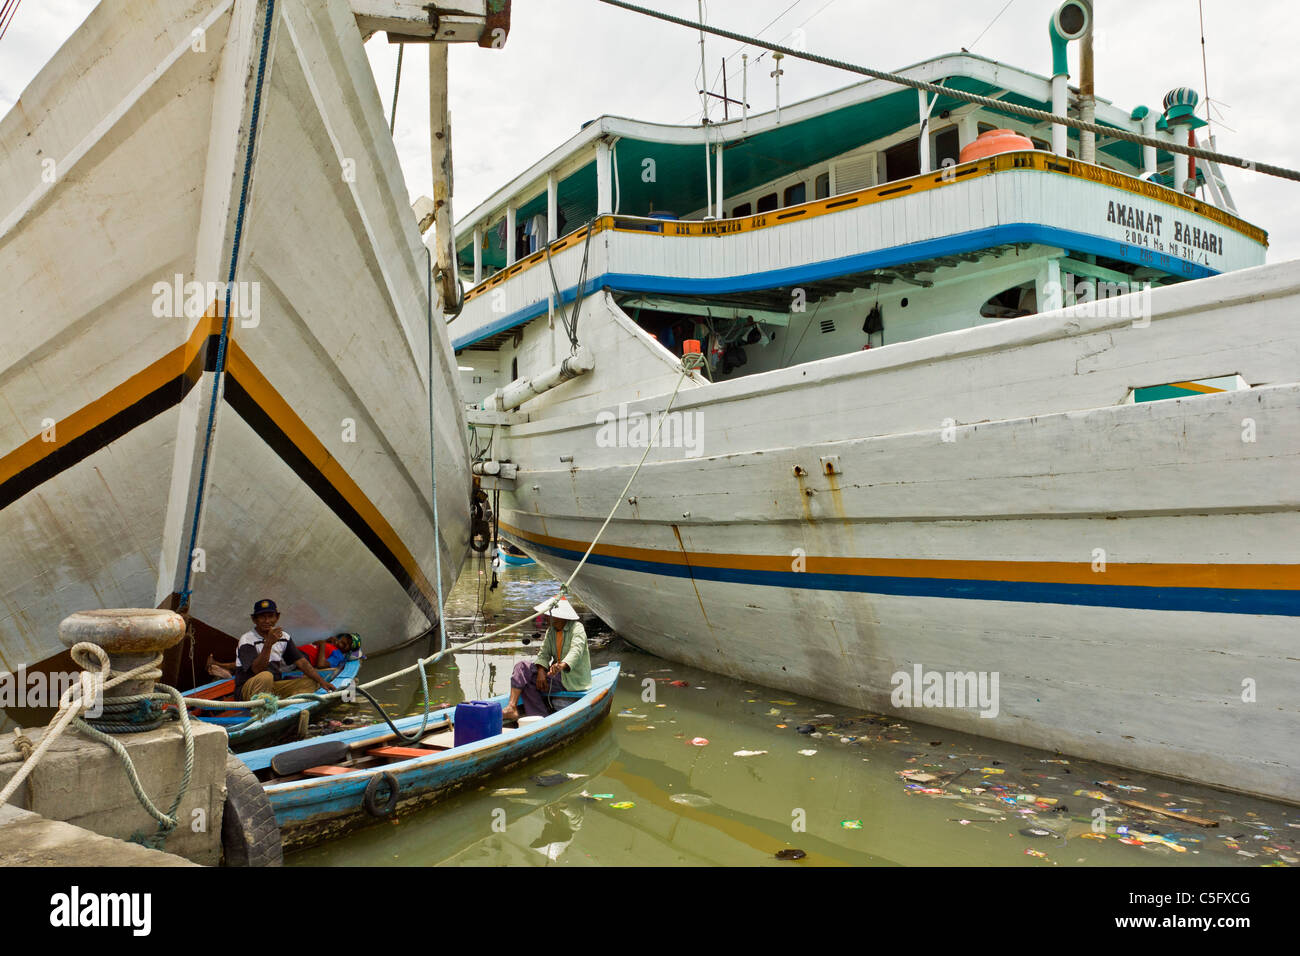 JAKARTA, INDONESIA - NOV 14 2010: Fisherman on boats resting amongst river pollution in Jakarta. - Stock Image